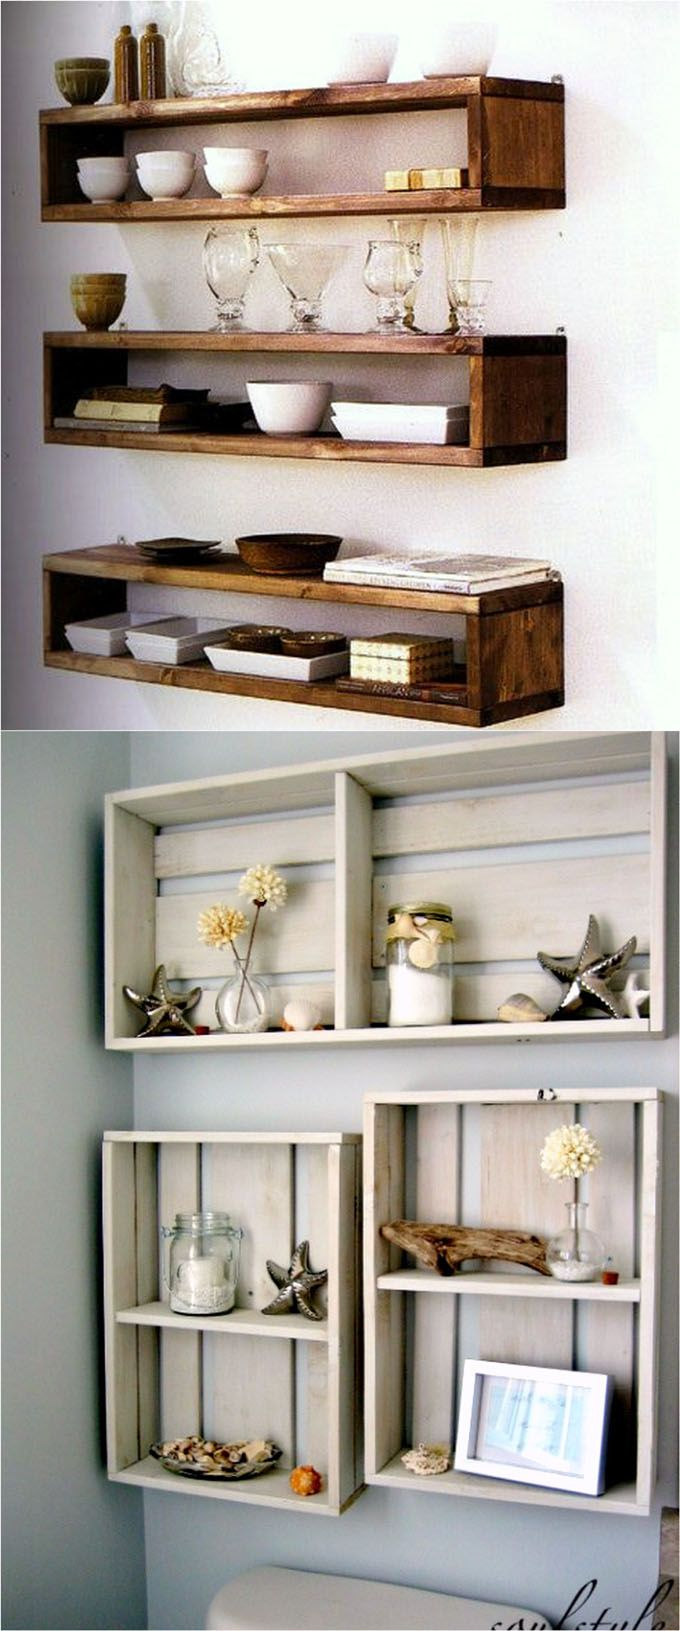 Best 25 wall shelves ideas on pinterest diy wall shelves wall 16 easy and stylish diy floating shelves wall shelves amipublicfo Image collections